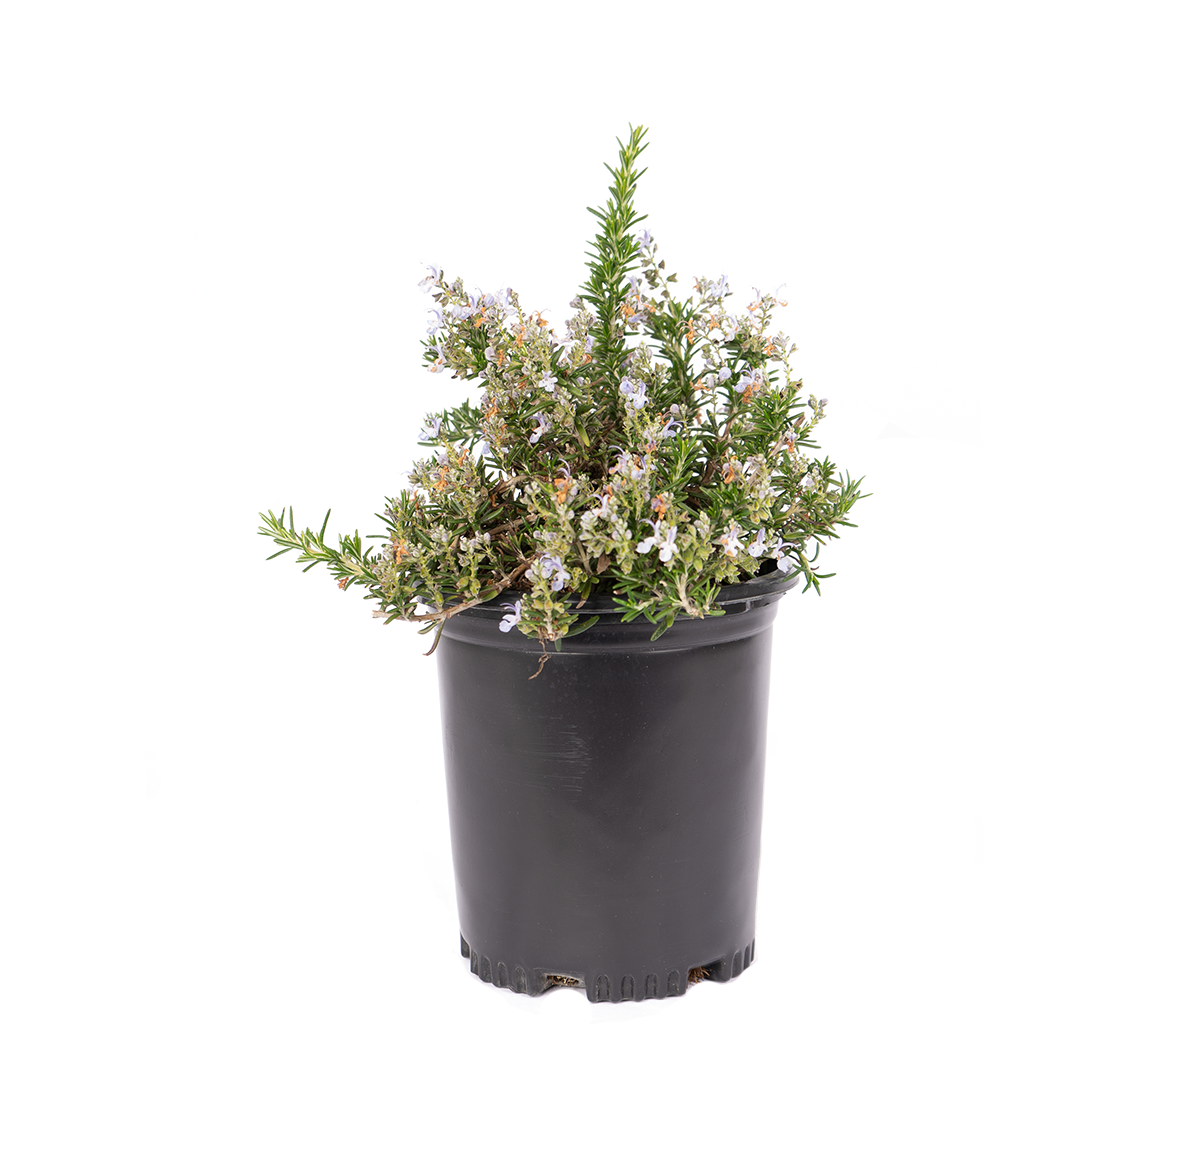 a single plant, Huntington Carpet Rosemary which has a blanket of deep blue flowers backed by green, needle-like foliage that forms an attractive spreading groundcover